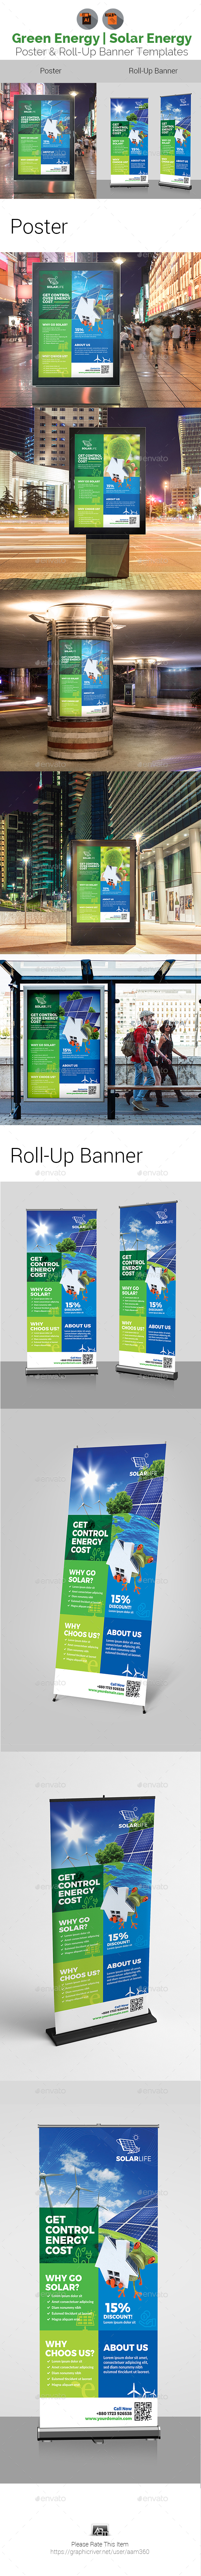 GraphicRiver Solar Energy Poster & Roll-Up Banner 20759389